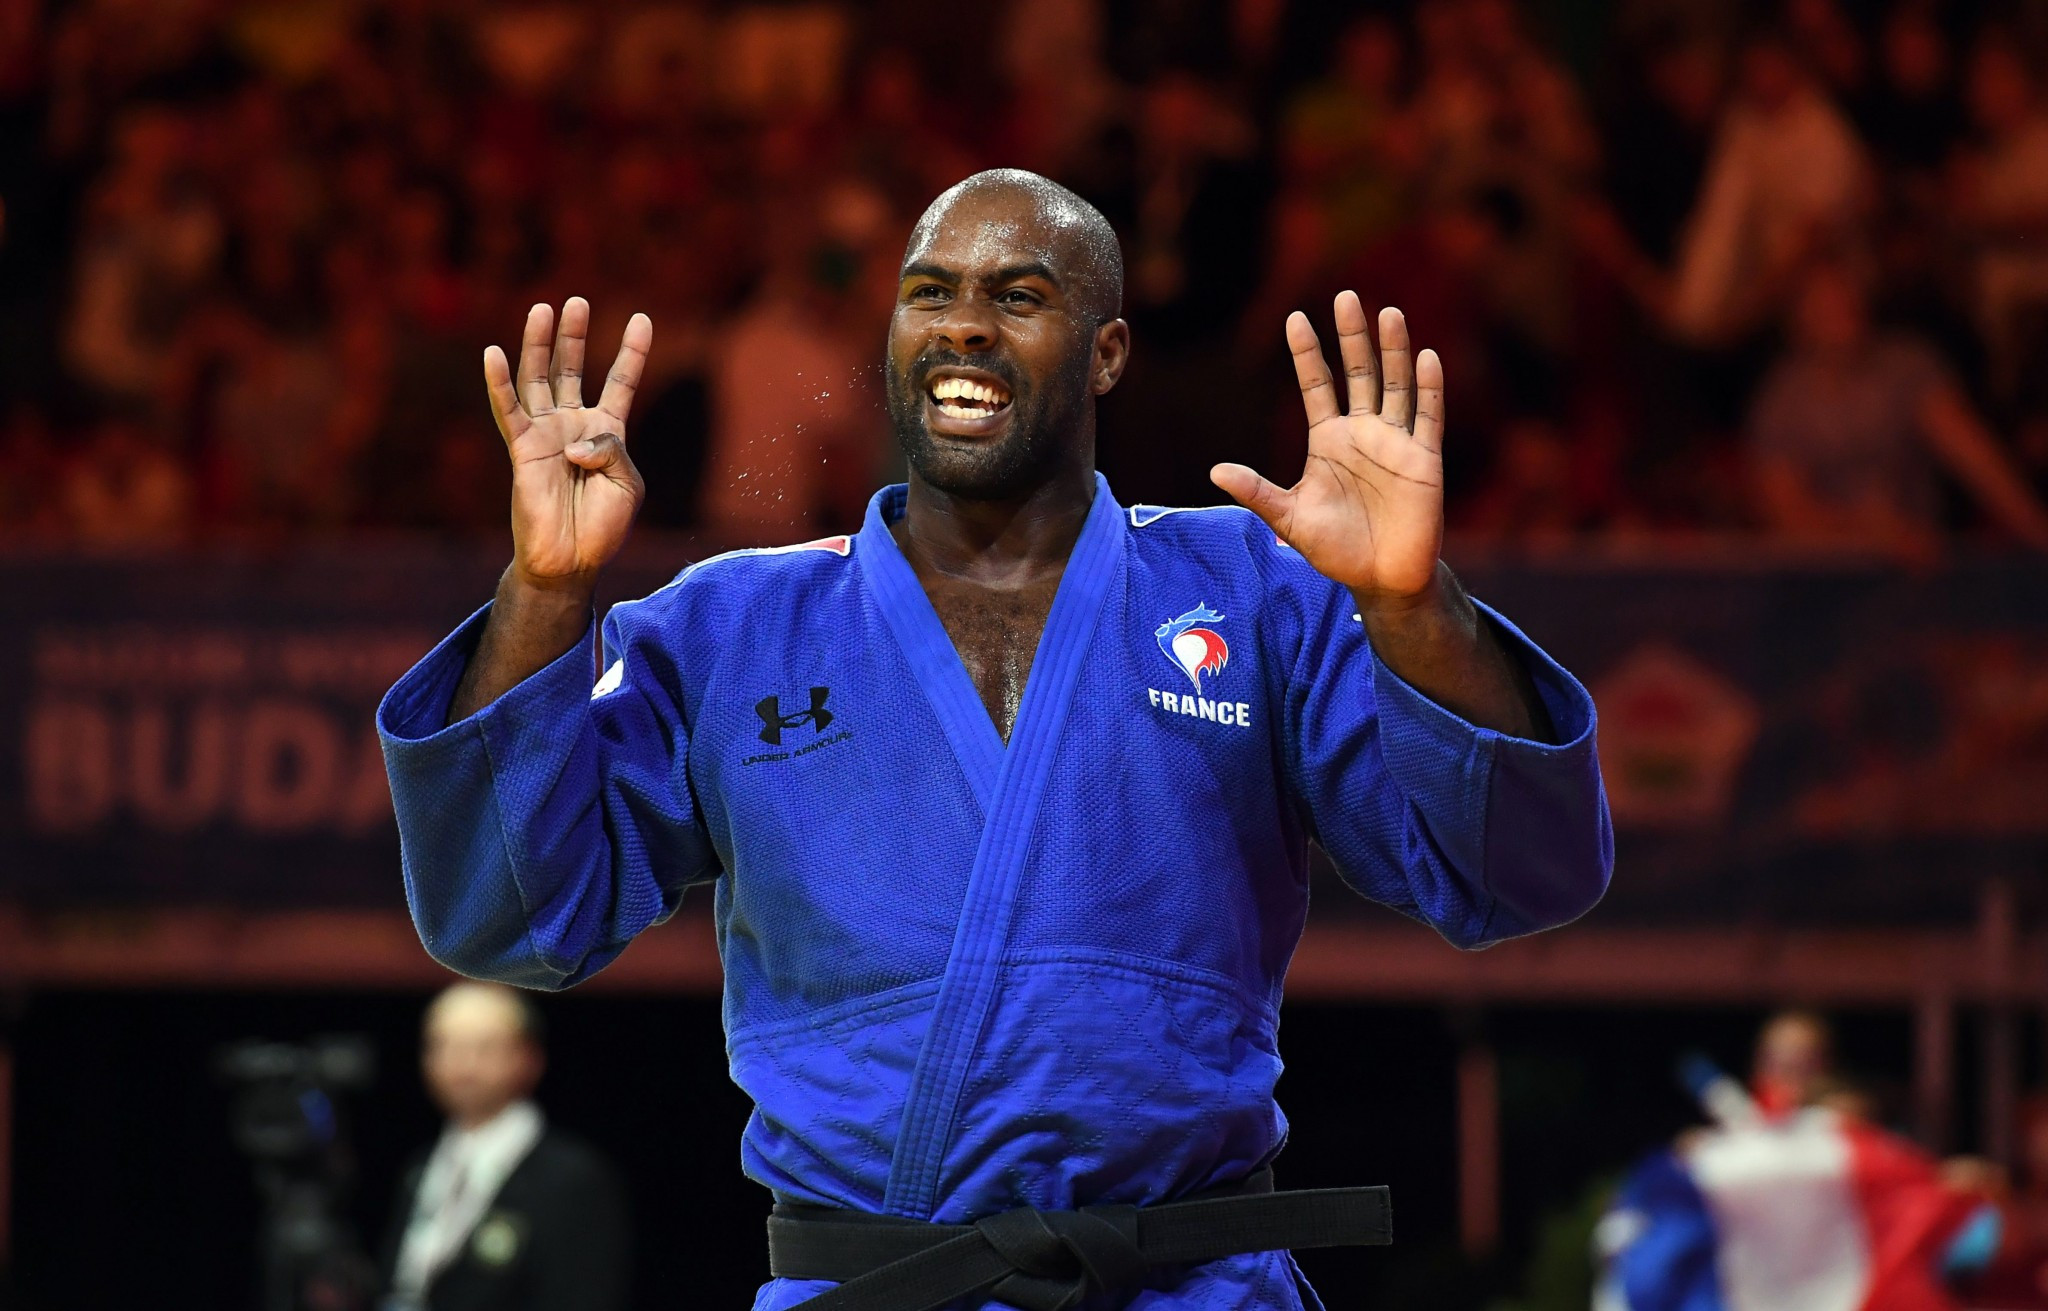 Individual competition concludes in style at IJF World Championships